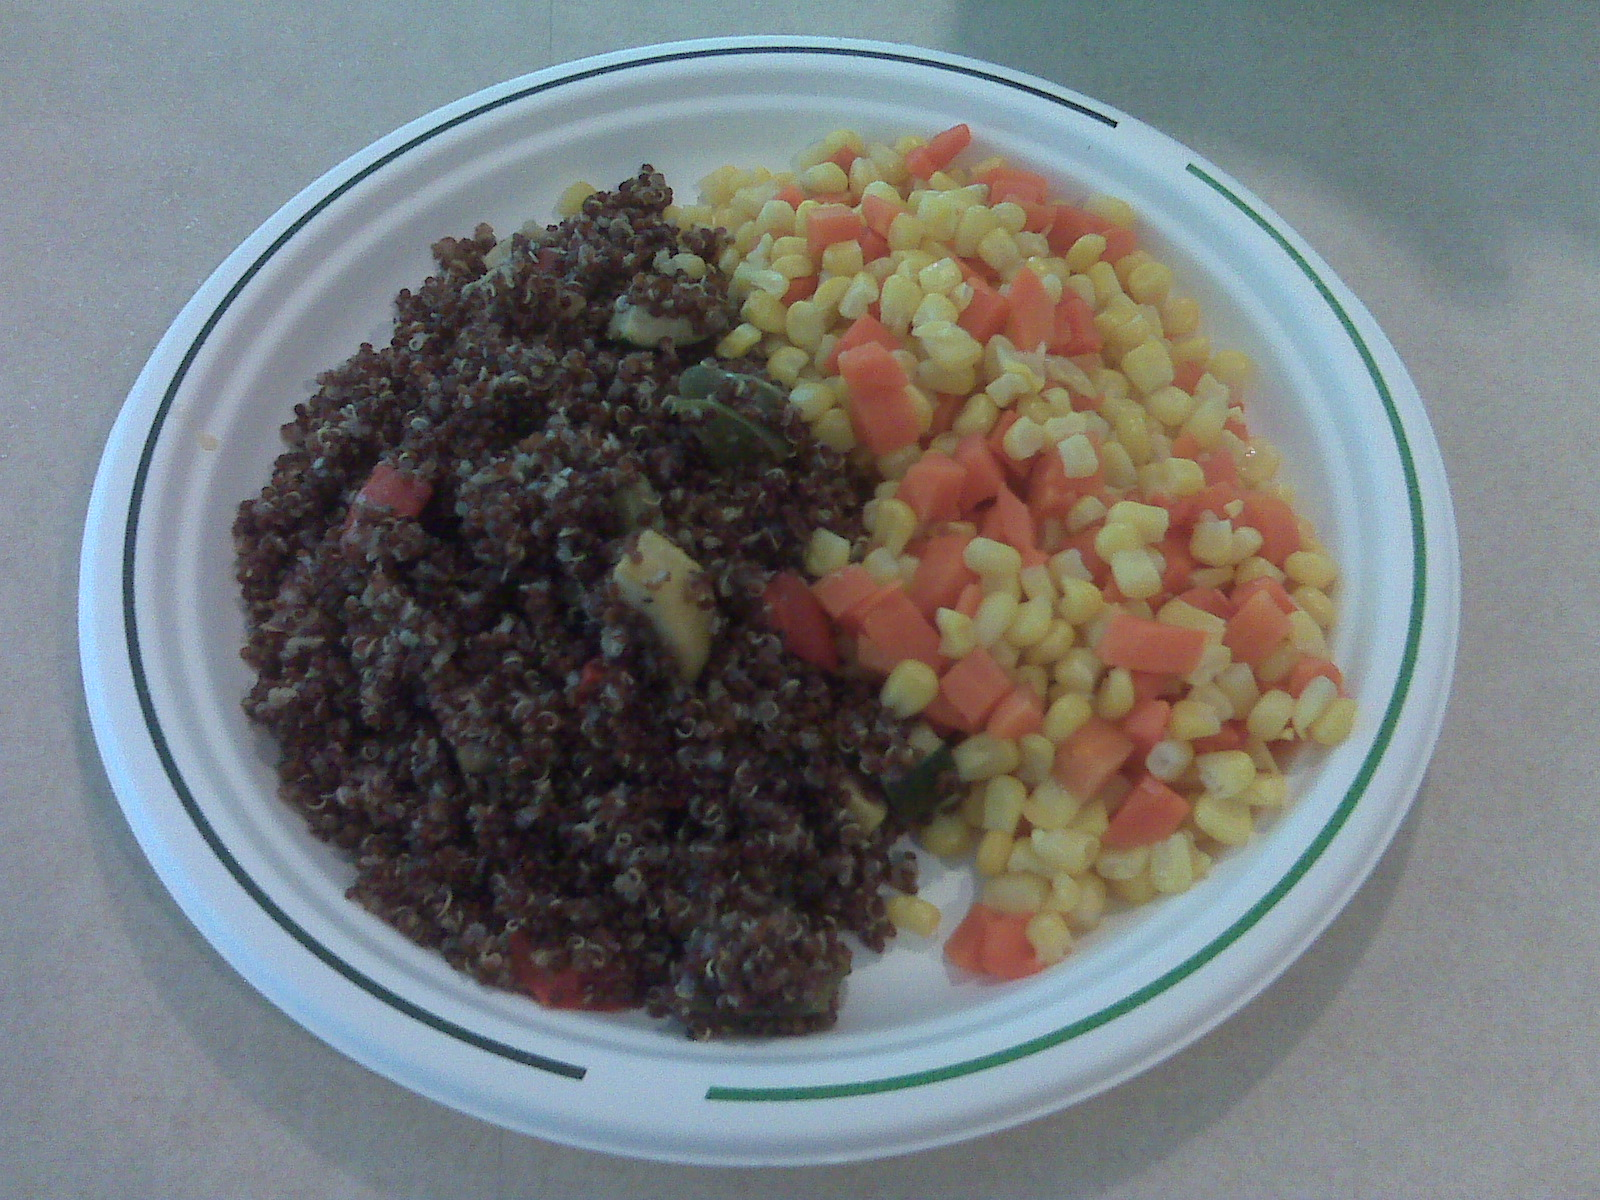 Bolivian red quinoa